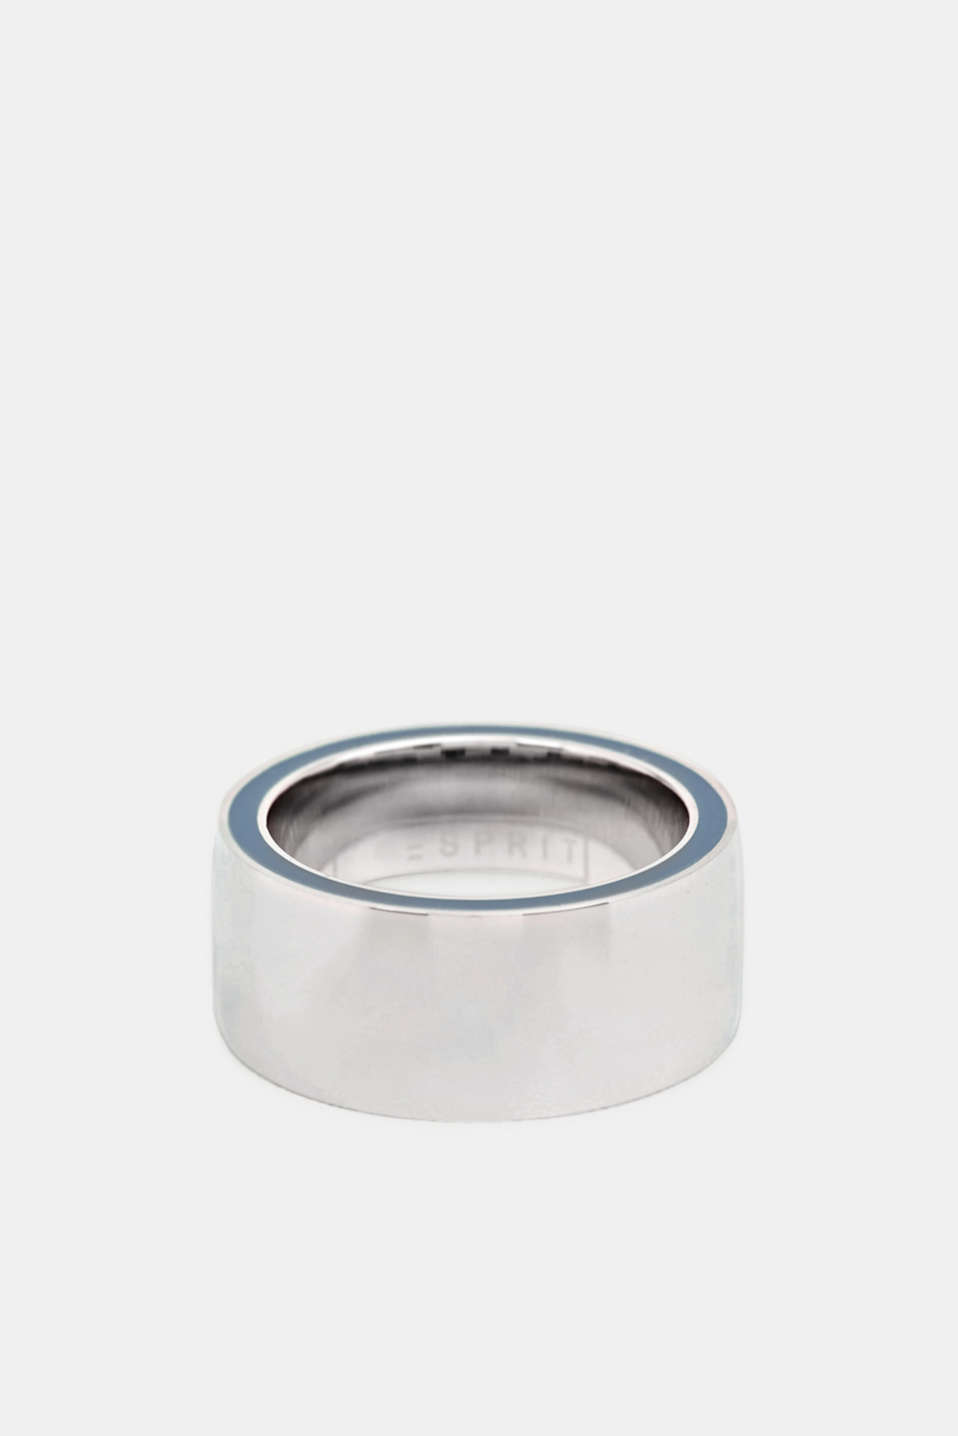 Esprit - Ring with a blue detail, stainless steel